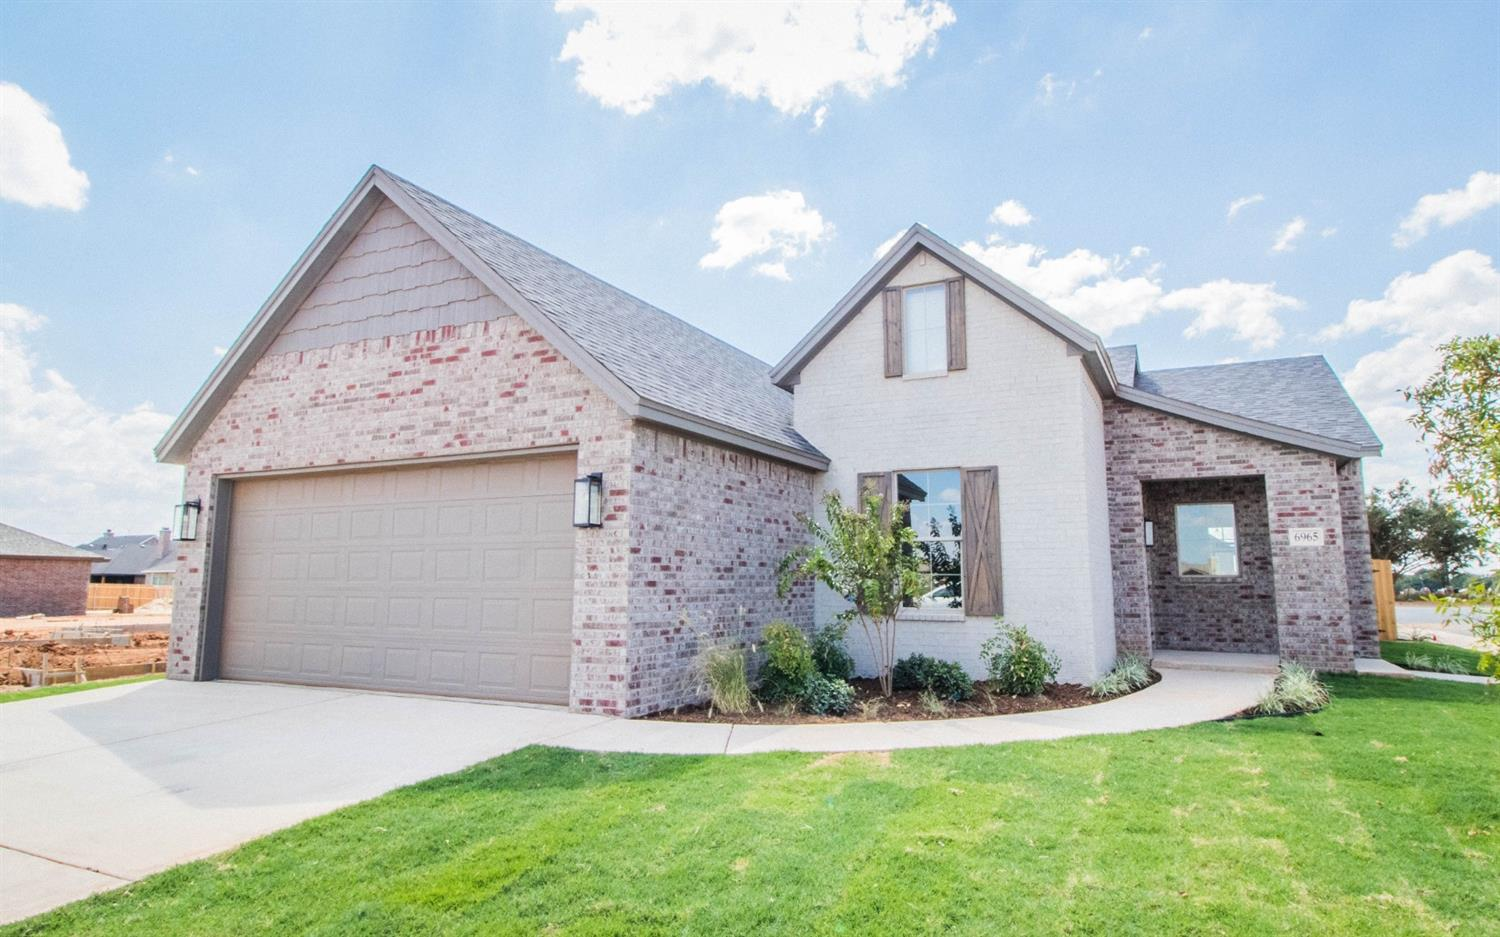 Another beautiful home by Apex Construction - perfect for you and your family.  This 4/2/2 boasts custom details and gorgeous finish selections throughout. Located in Bushland Springs, a growing part of west Lubbock.  Apex Construction prides itself in hard work and customer service, because they truly value the people that they work with. With years of construction experience, customers will feel valued and listened to as they work side by side with our team to design their dream home. Call today to see this home you are sure to fall in love with!  Welcome Home!